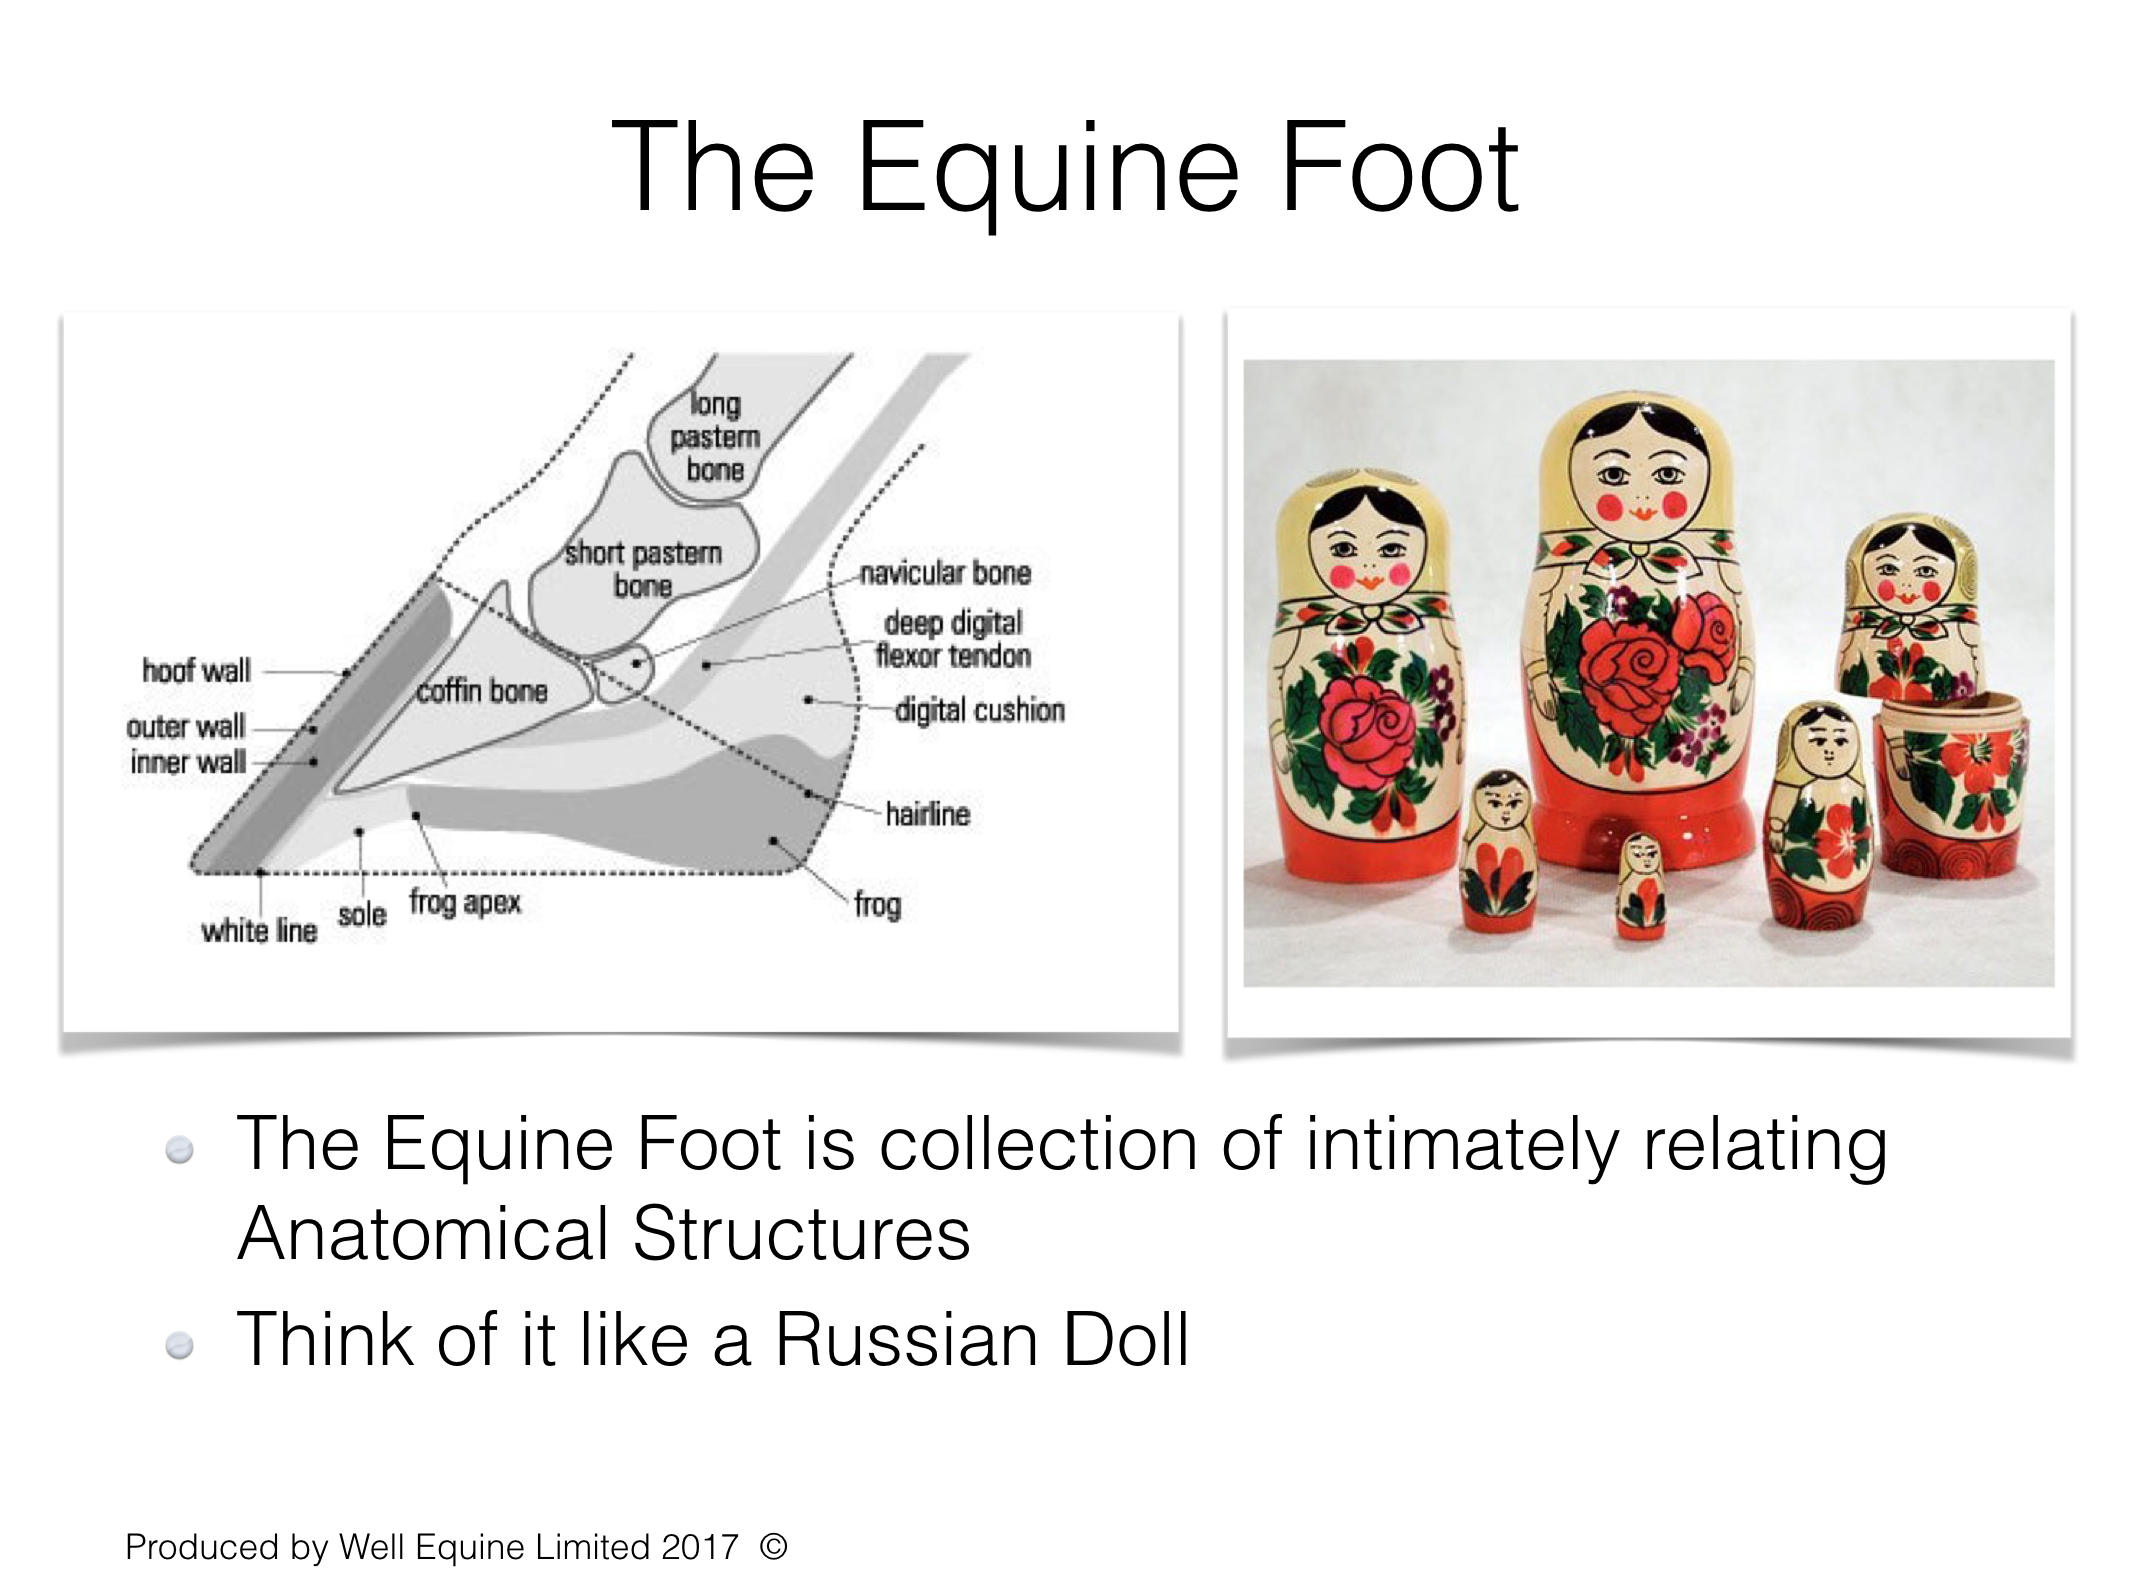 The Equine Foot